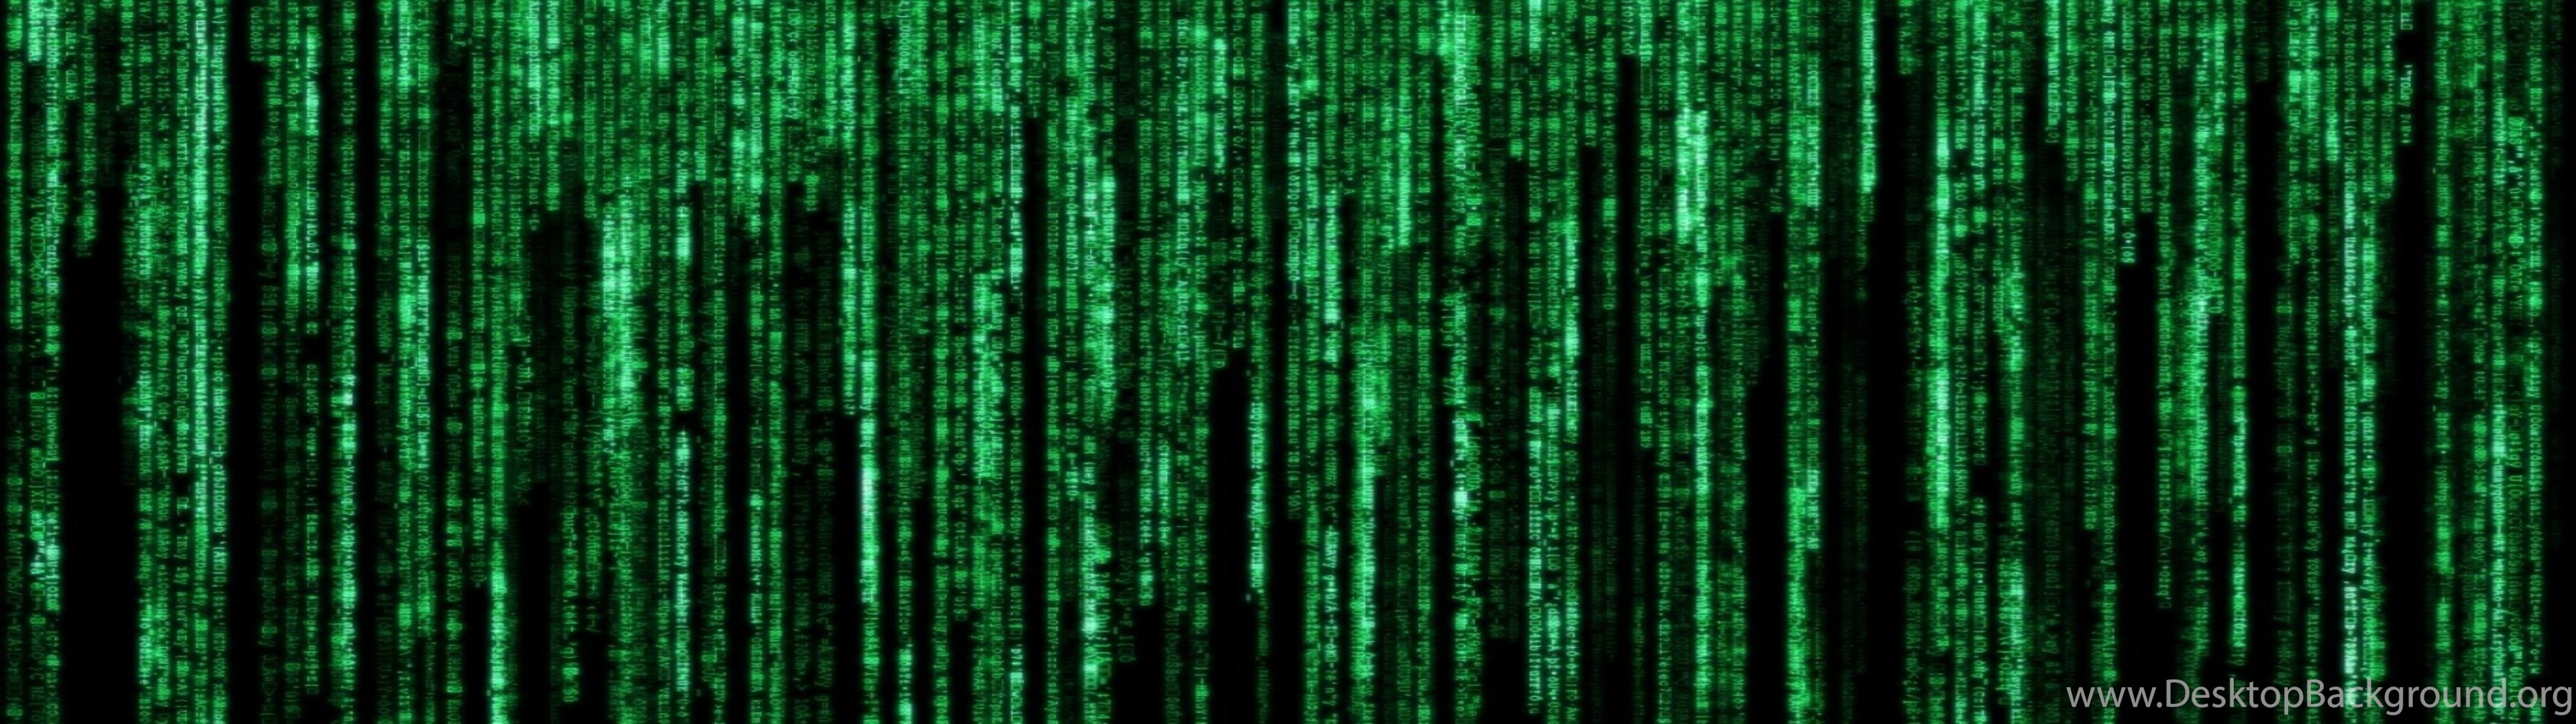 download matrix hd wallpapers in 3840x1080 widescreen